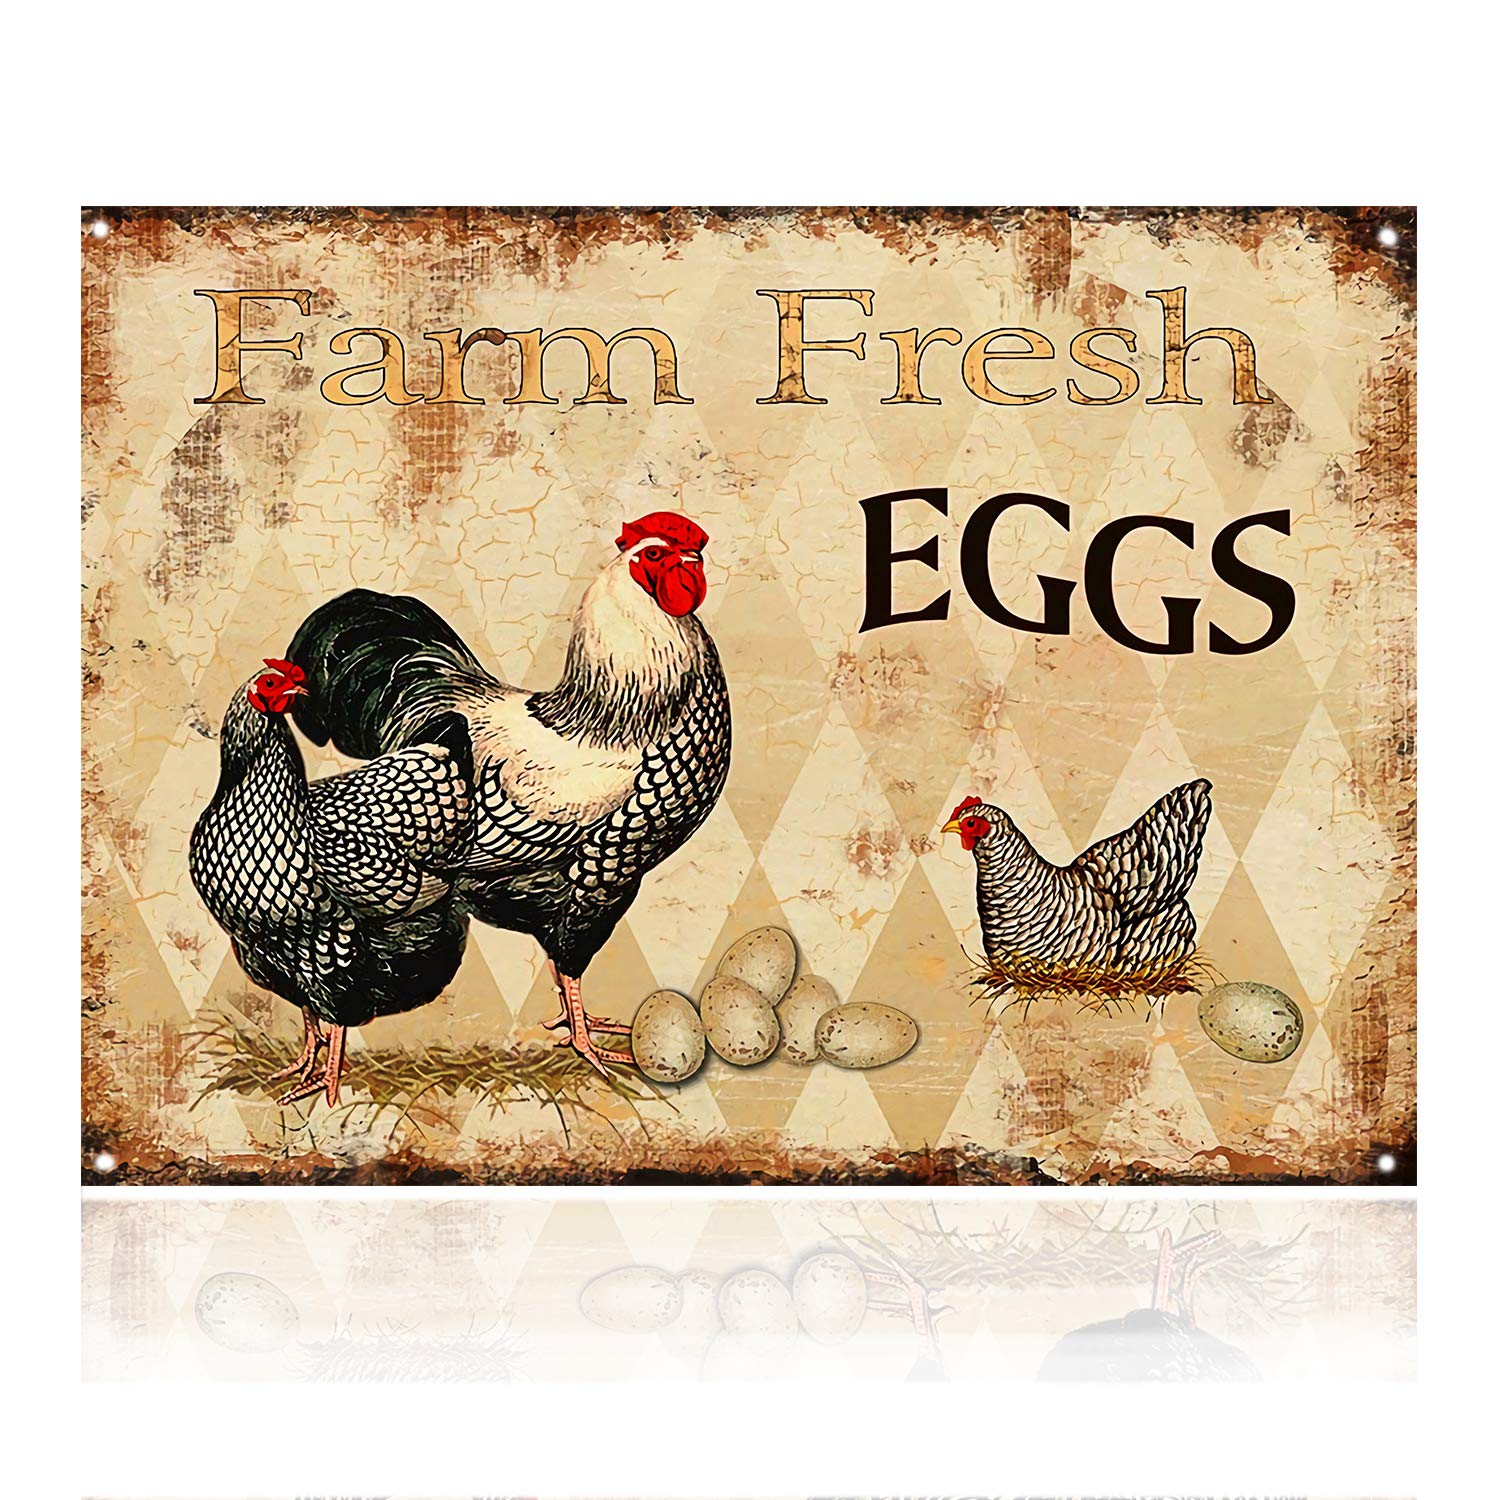 M-Mount Tin Signs Farm Fresh Eggs Designs Coffee Time Retro Vintage Decor Metal Bar Country Home Bedroom Creative Wall Restaurant Hang Sign12x8